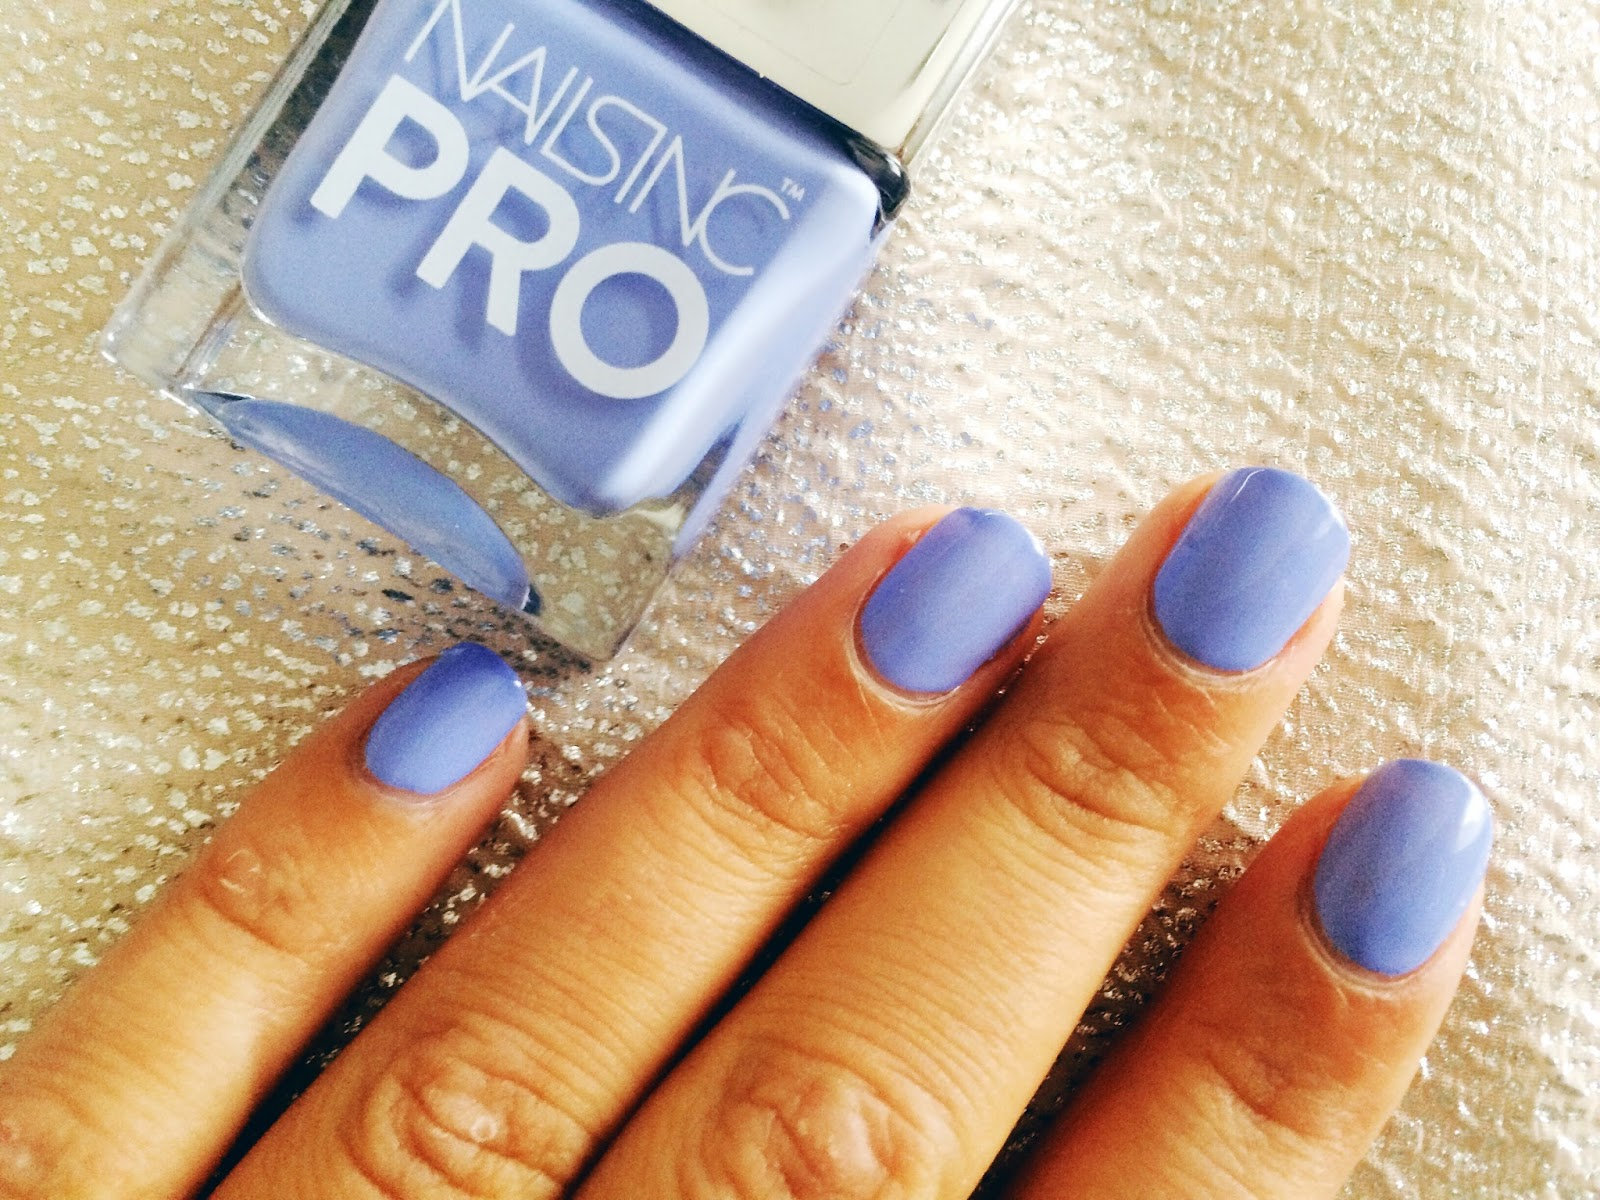 Today Im Reviewing And Swatching Nails Inc Pro Polishes They Are Gel Finish Long Wearing Without The Need For A UV Lamp Or Soak Off